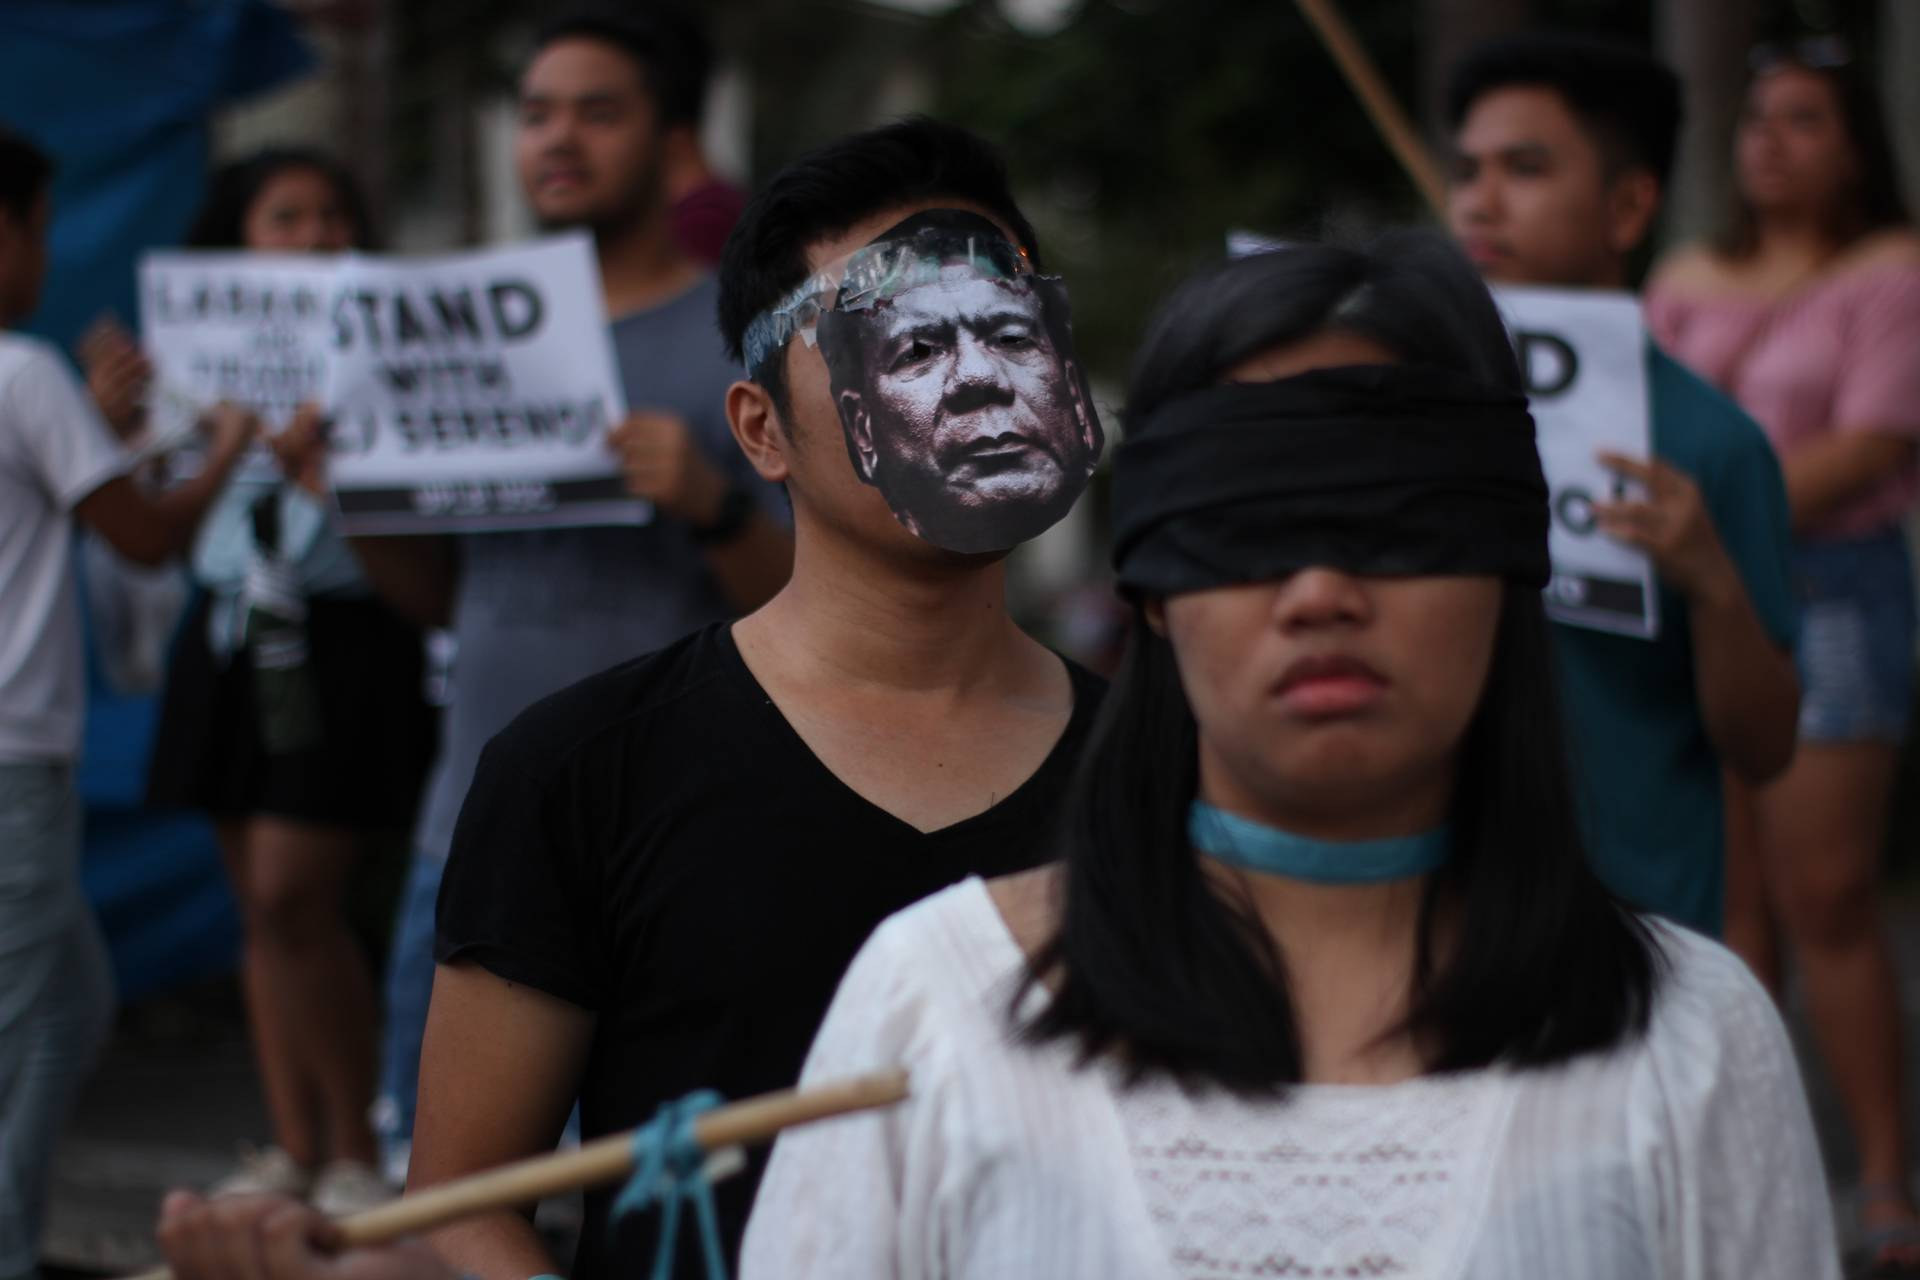 'WE DISSENT'. UPLB students hold a protest against the ouster of Chief Justice Maria Lourdes Sereno. Photo by Neren Bartolay